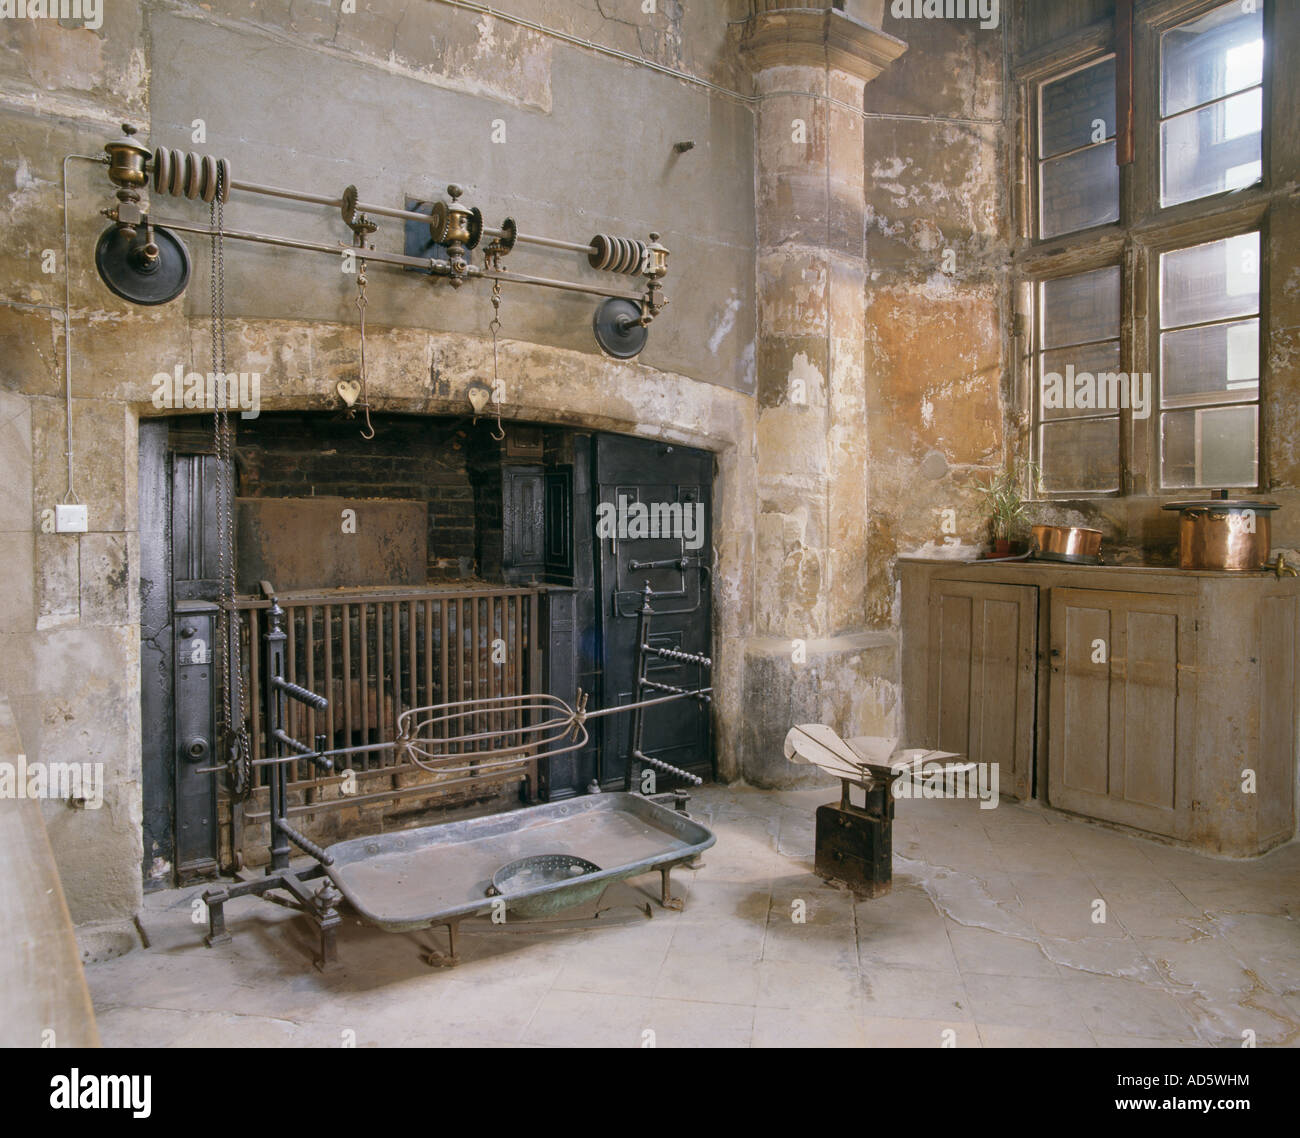 Large Oven And Cooking Racks In Old Country Kitchen With Stone Walls